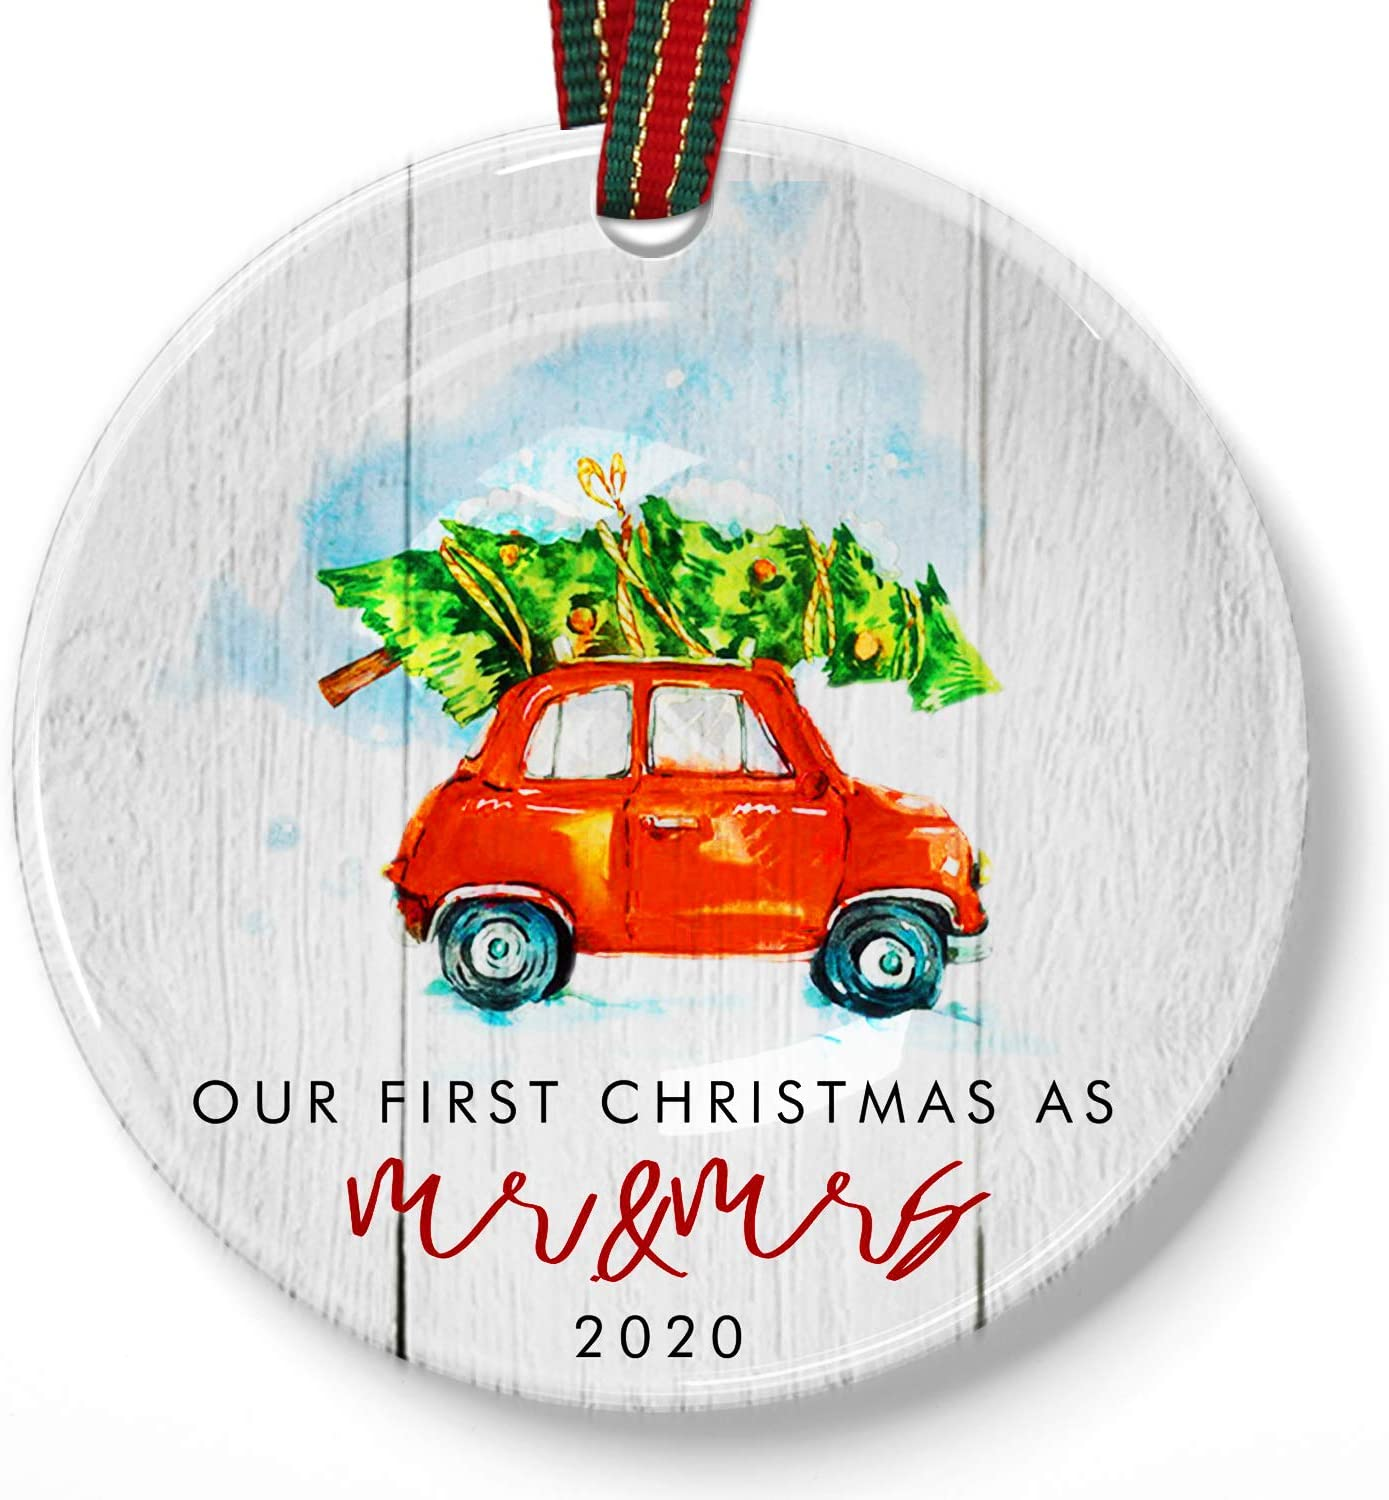 Muminglong First Christmas as Mr & Mrs Ornament 2020 Rustic 1st Year Married Newlyweds |Xmas Ribbon & Xmas Theme Gift Box|Mr & Mrs First (Christmas Car Design)